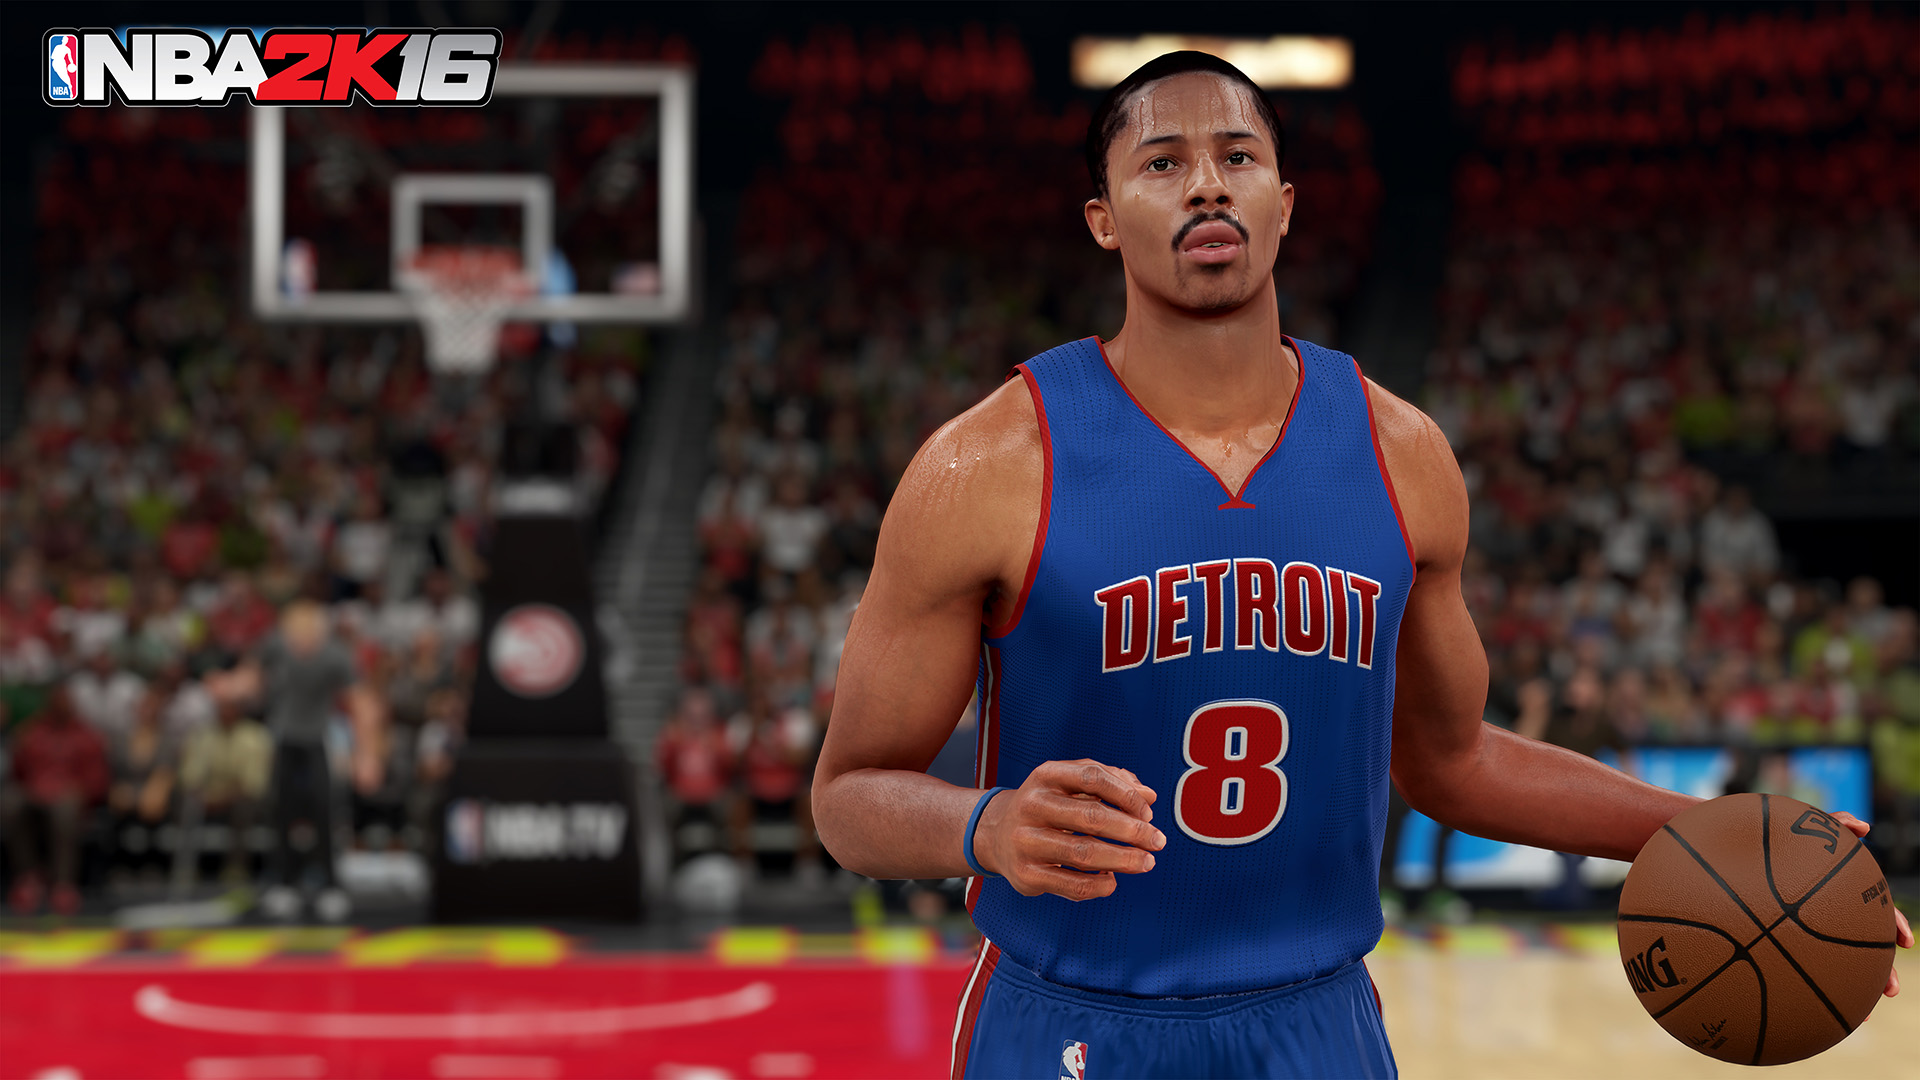 Get Nba 2K16 Free Download Windows 10 PNG